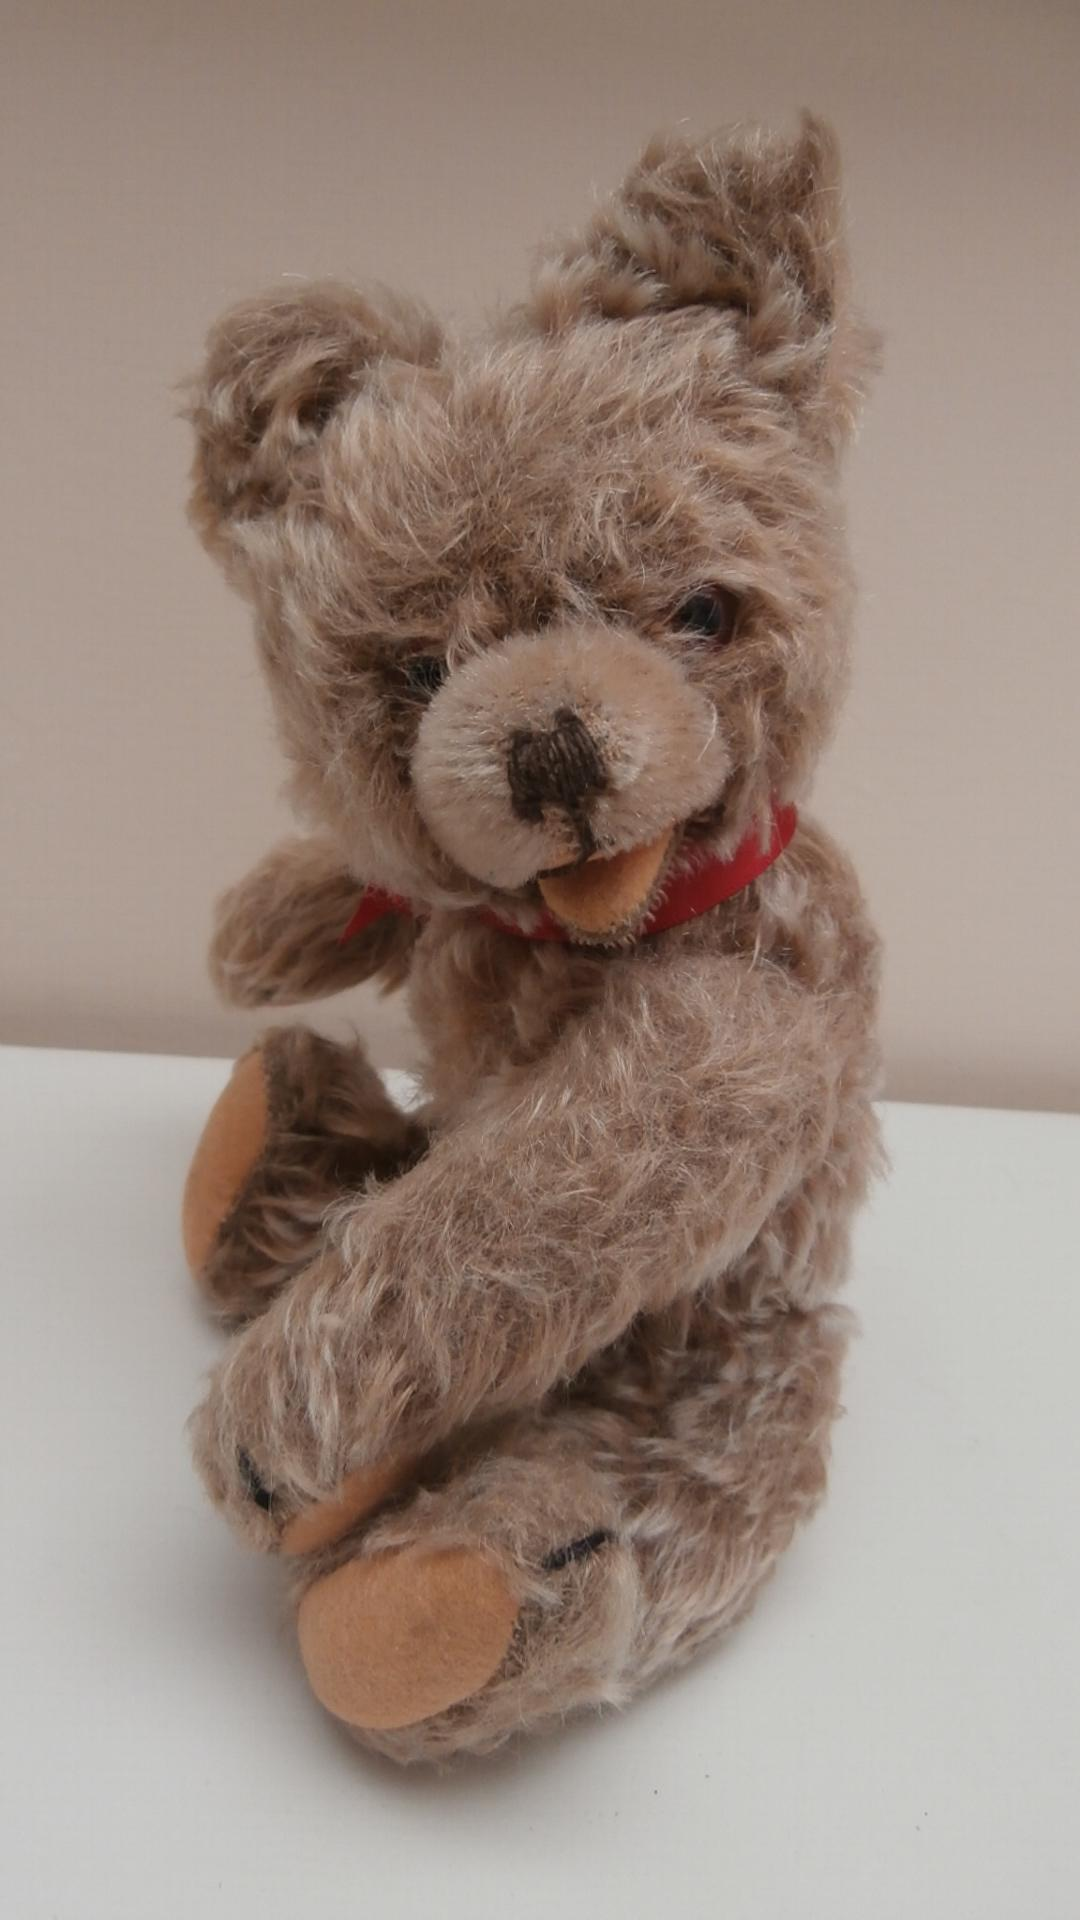 Hans. Hermann Zotty Type Teddy Bear, No Id's